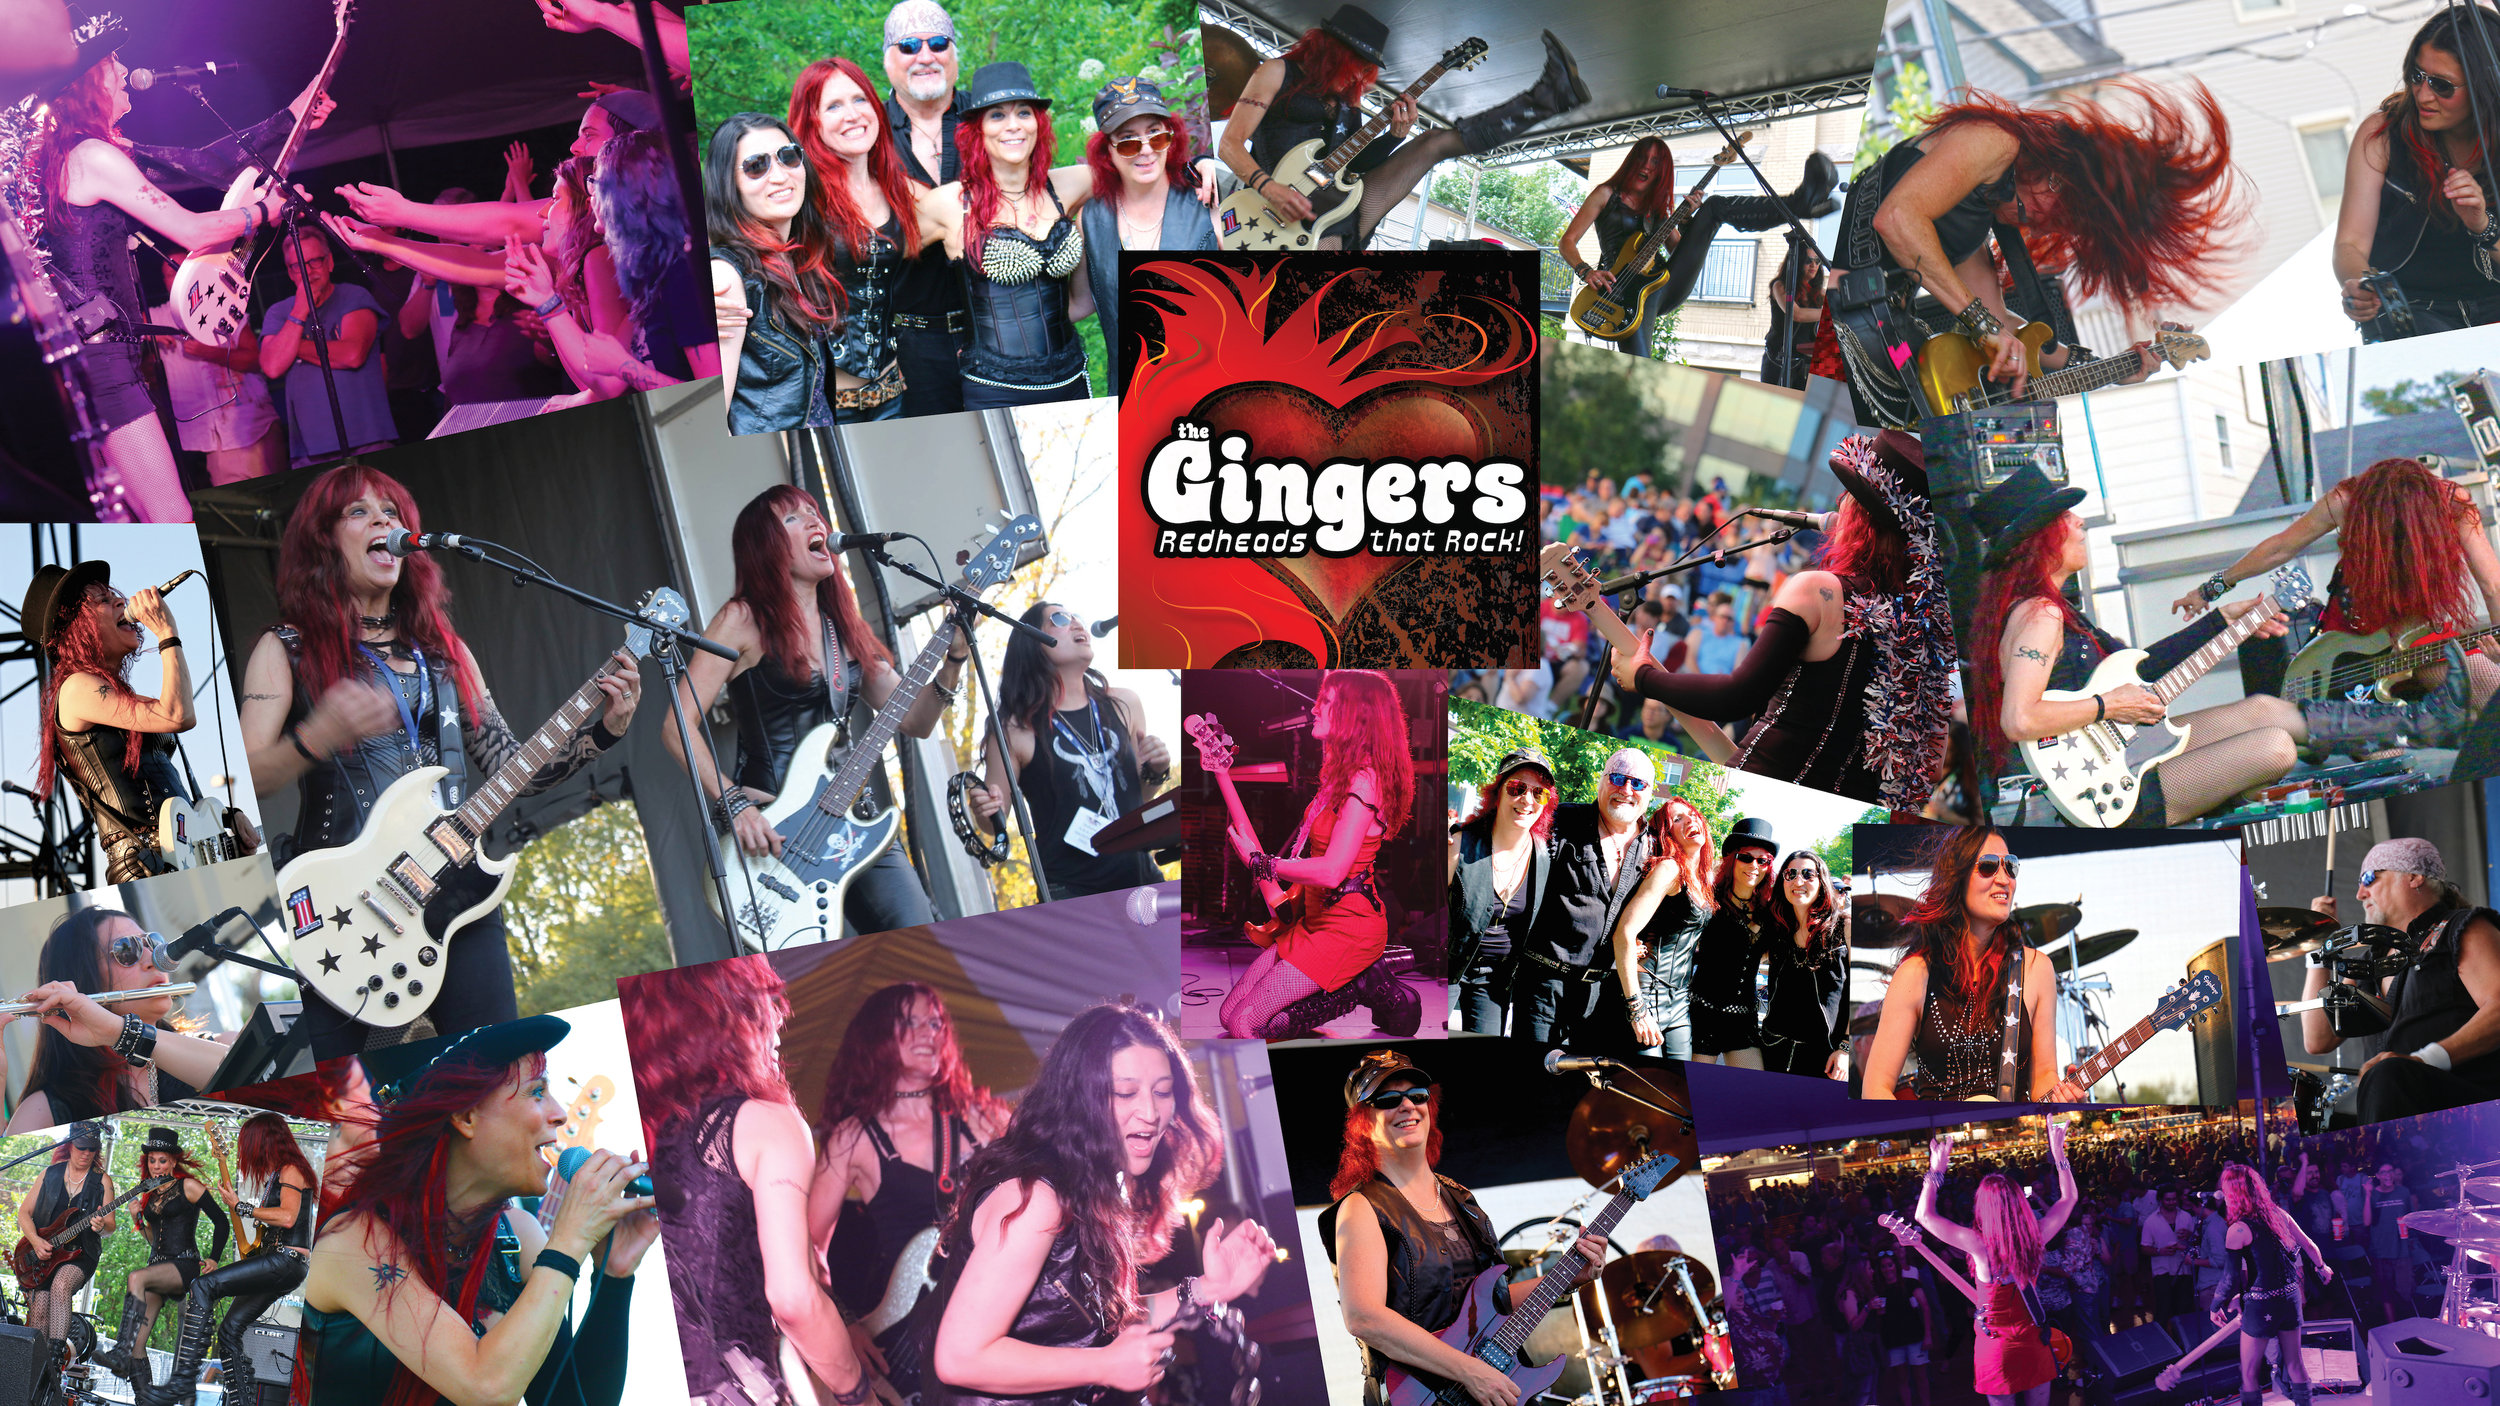 Gingers_collage_1_smaller.jpg